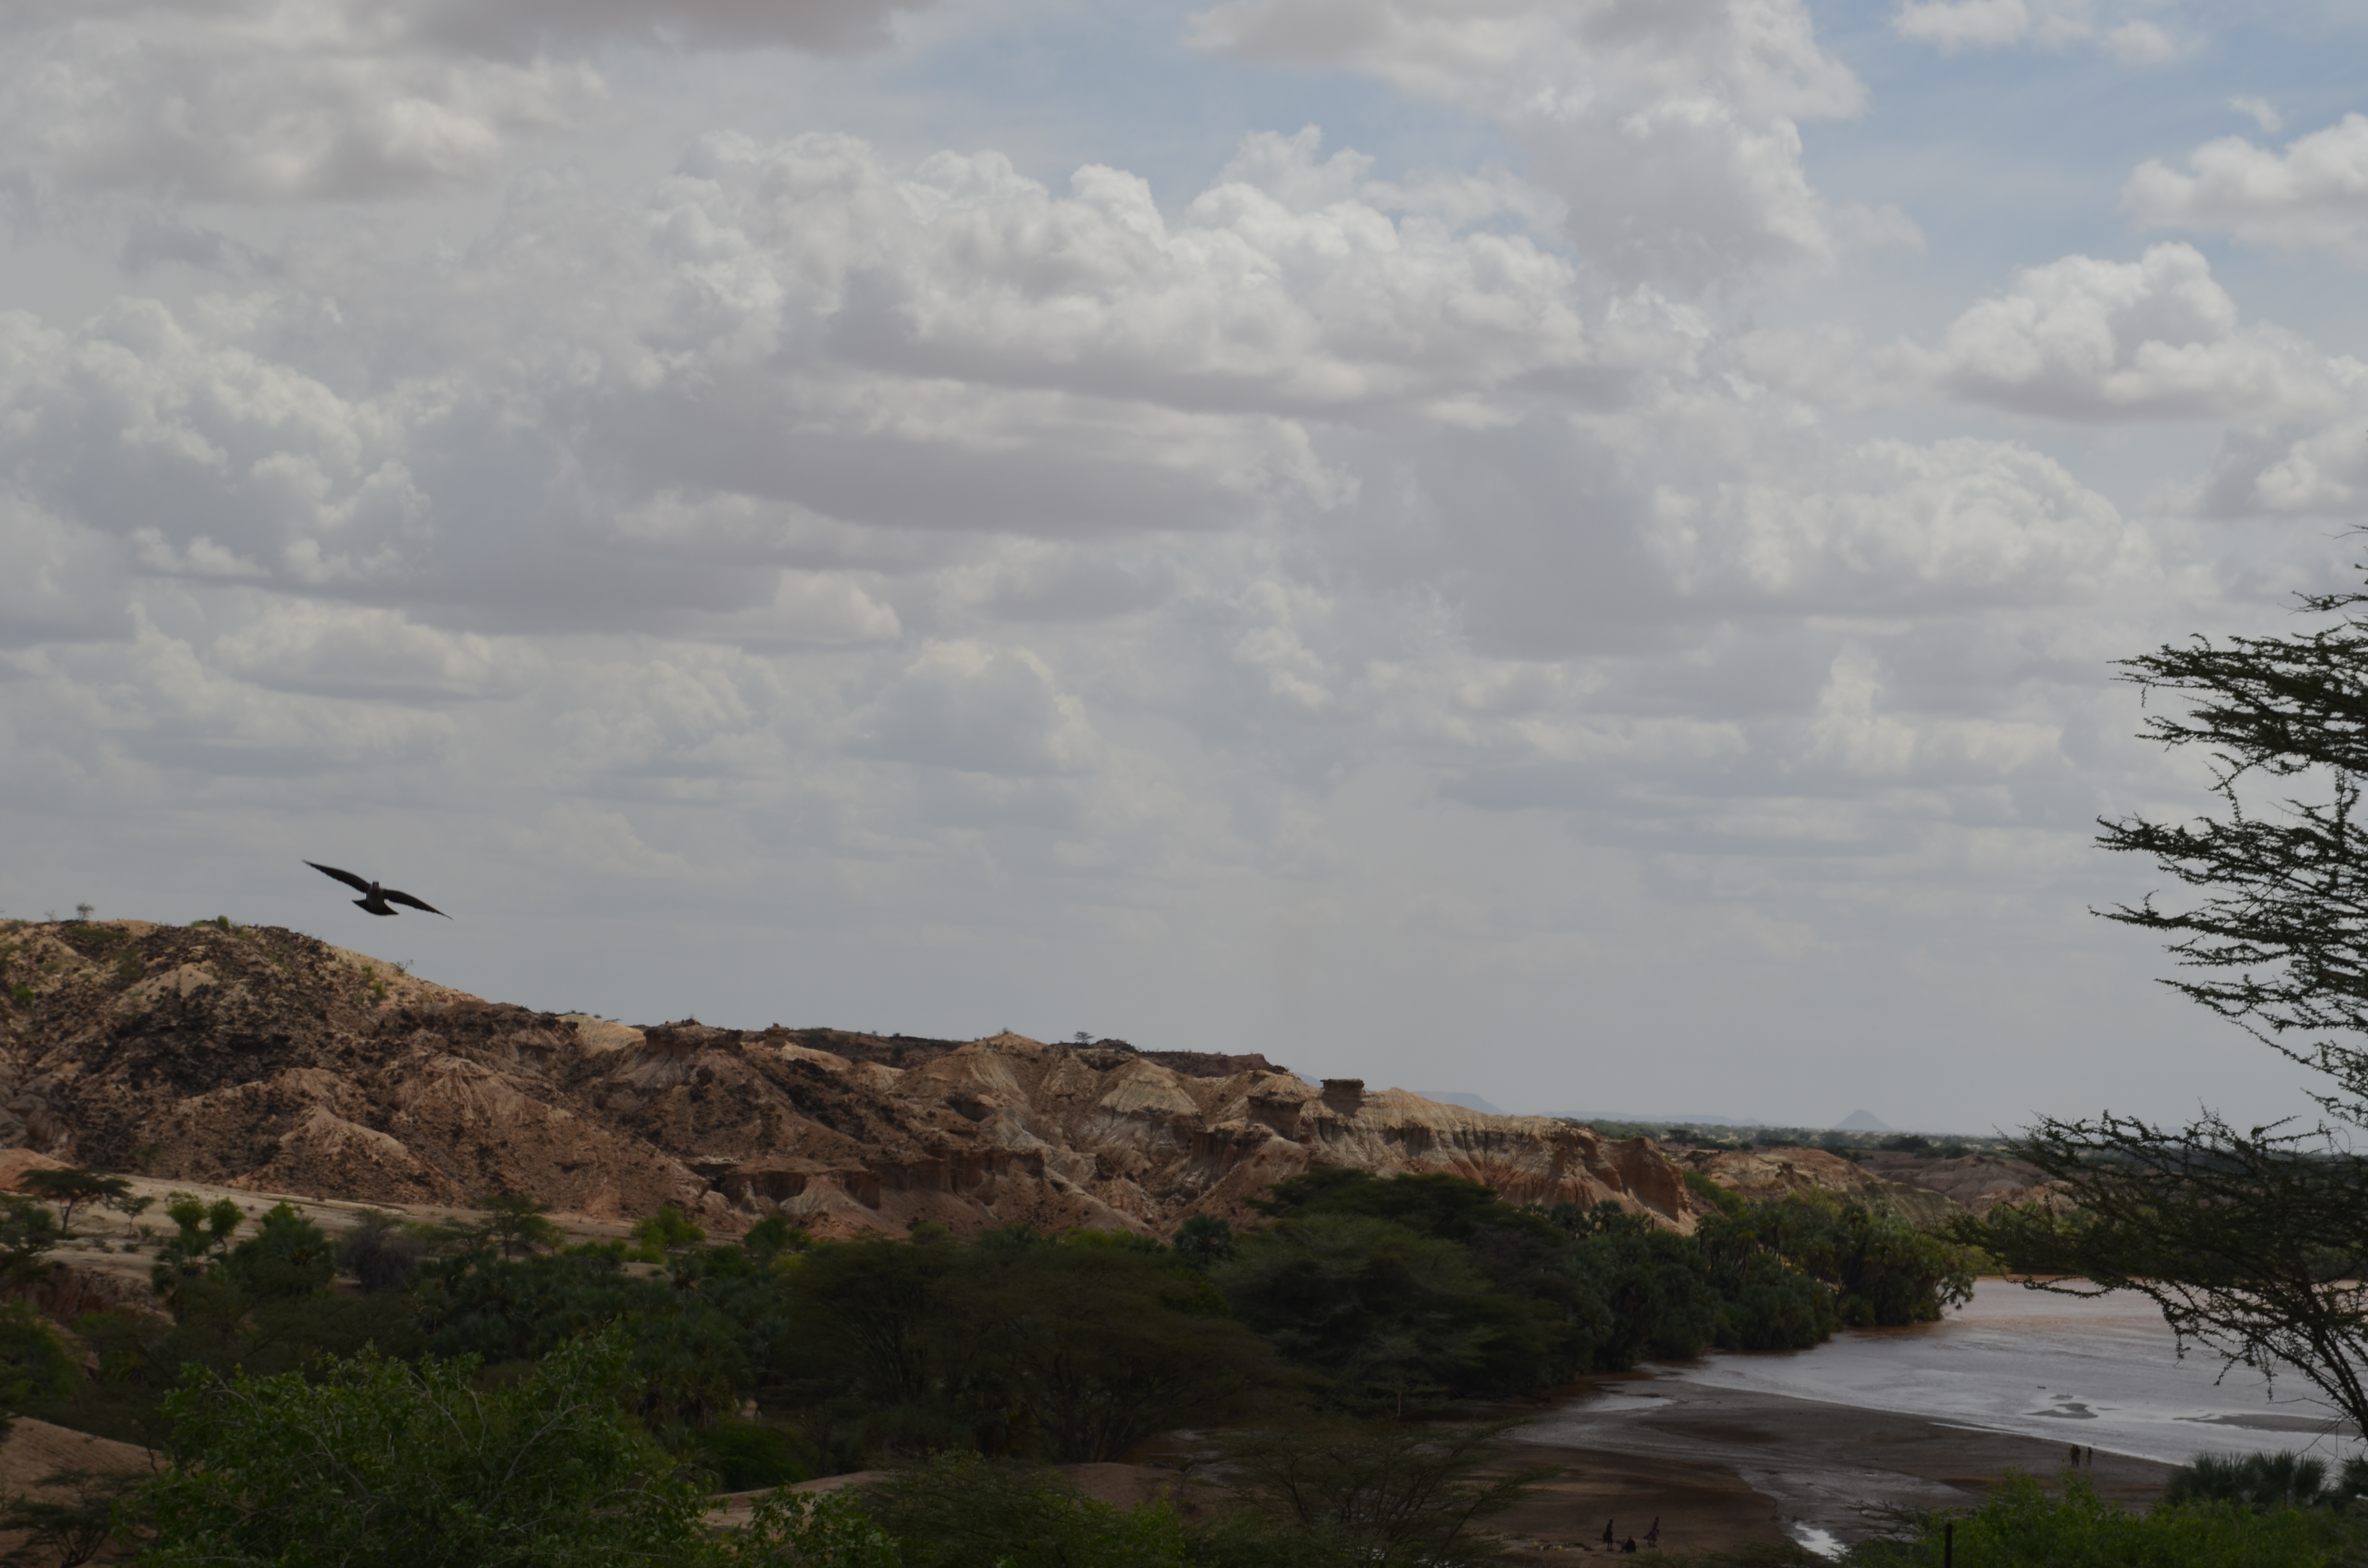 Deeply eroded badlands like these near the Turkwel River are ideal for finding fossils and artifacts.